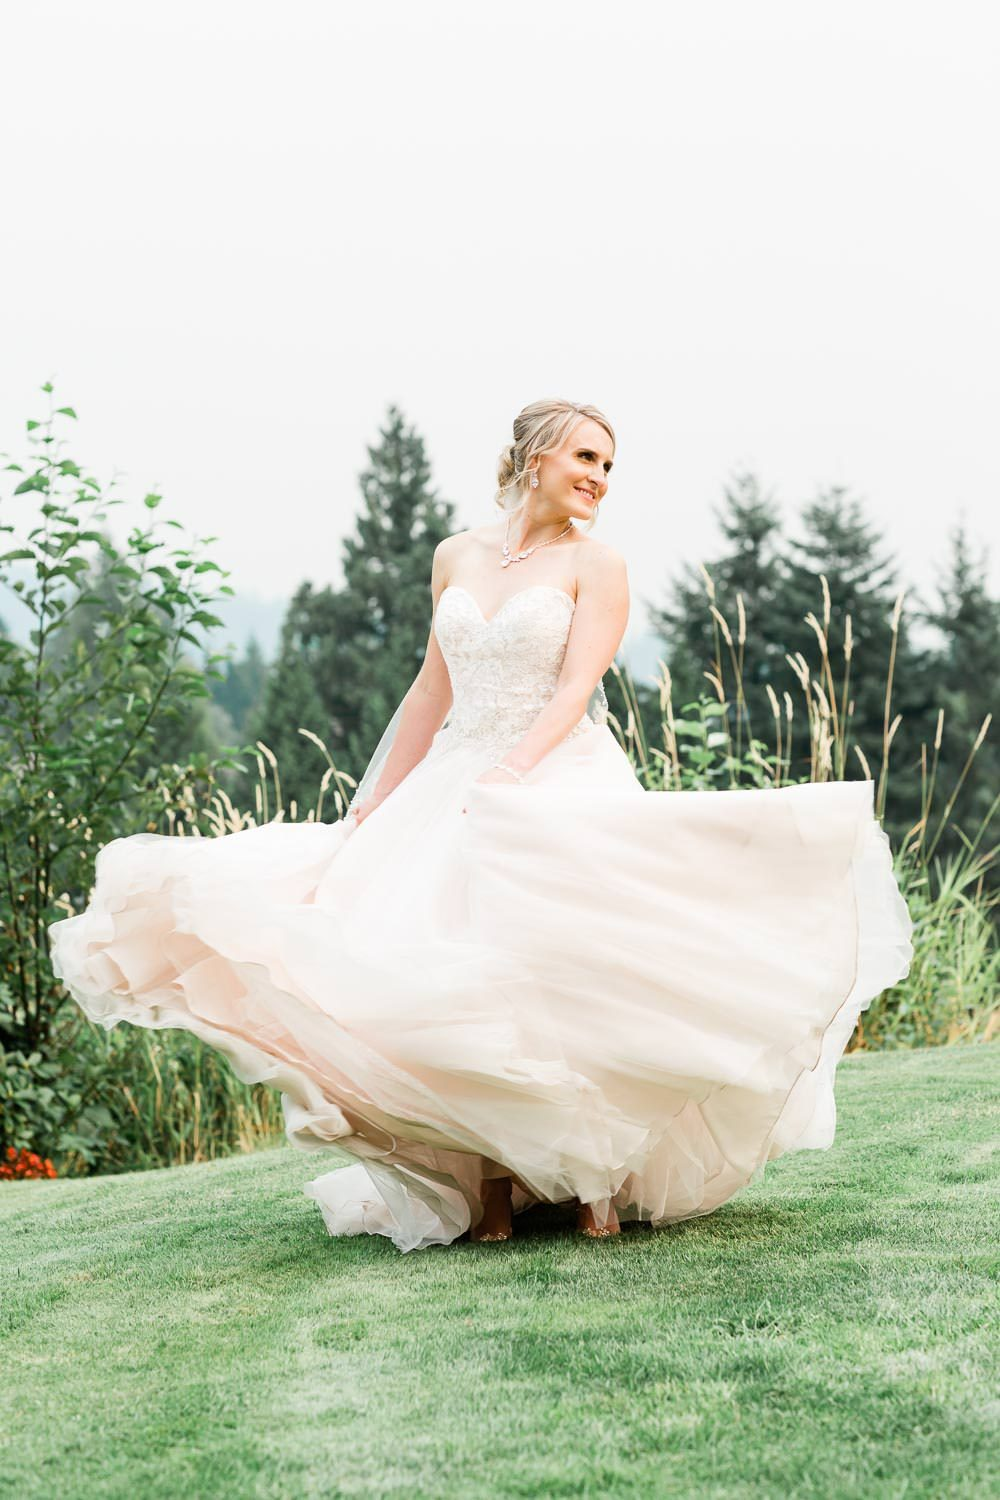 Stunning bride dancing on the grass | Vancouver wedding photographer